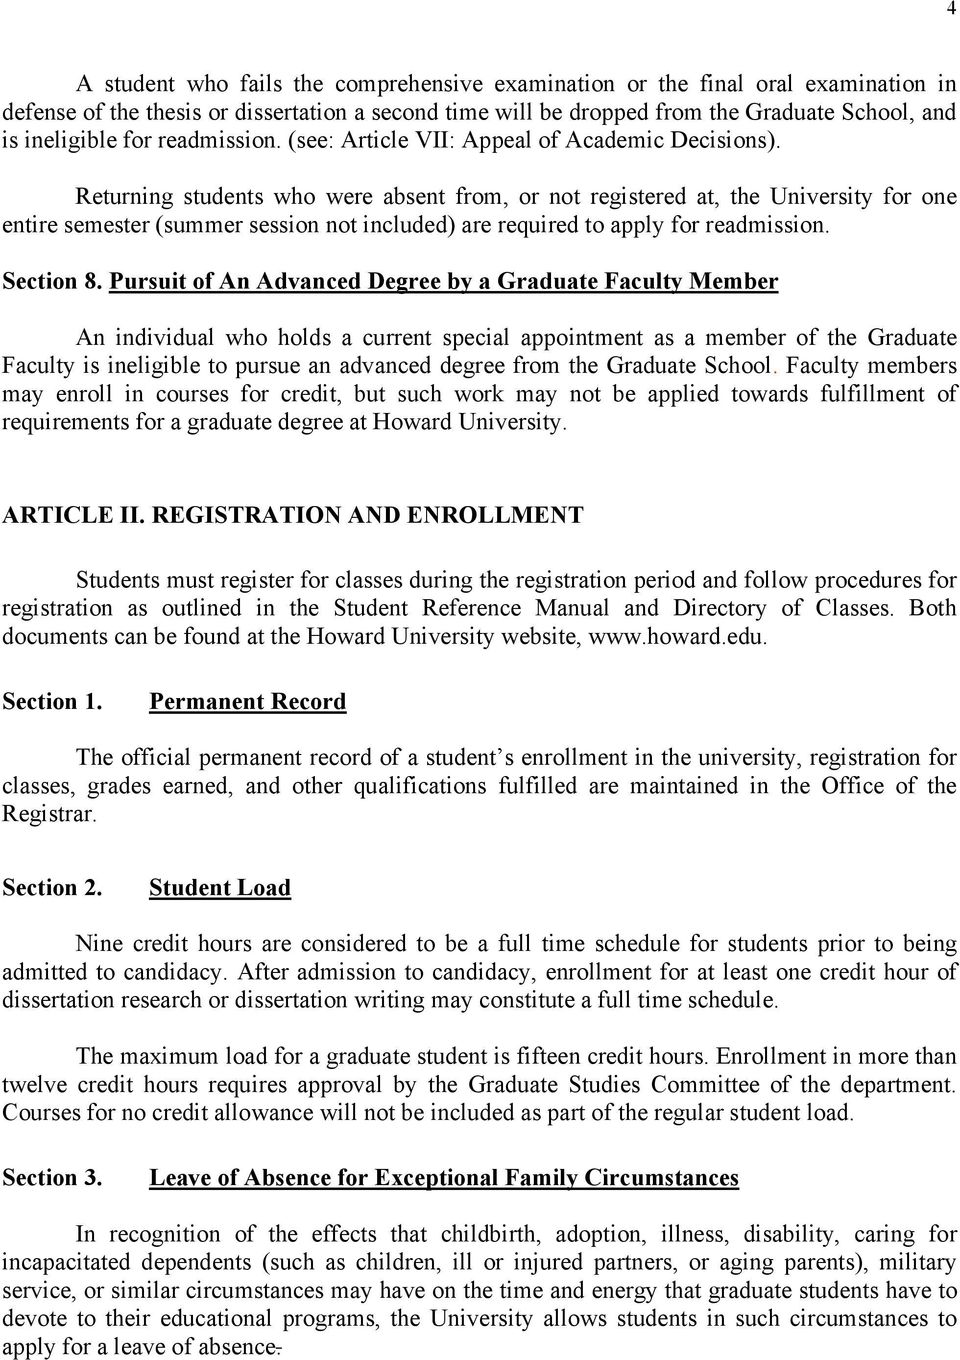 Returning students who were absent from, or not registered at, the University for one entire semester (summer session not included) are required to apply for readmission. Section 8.